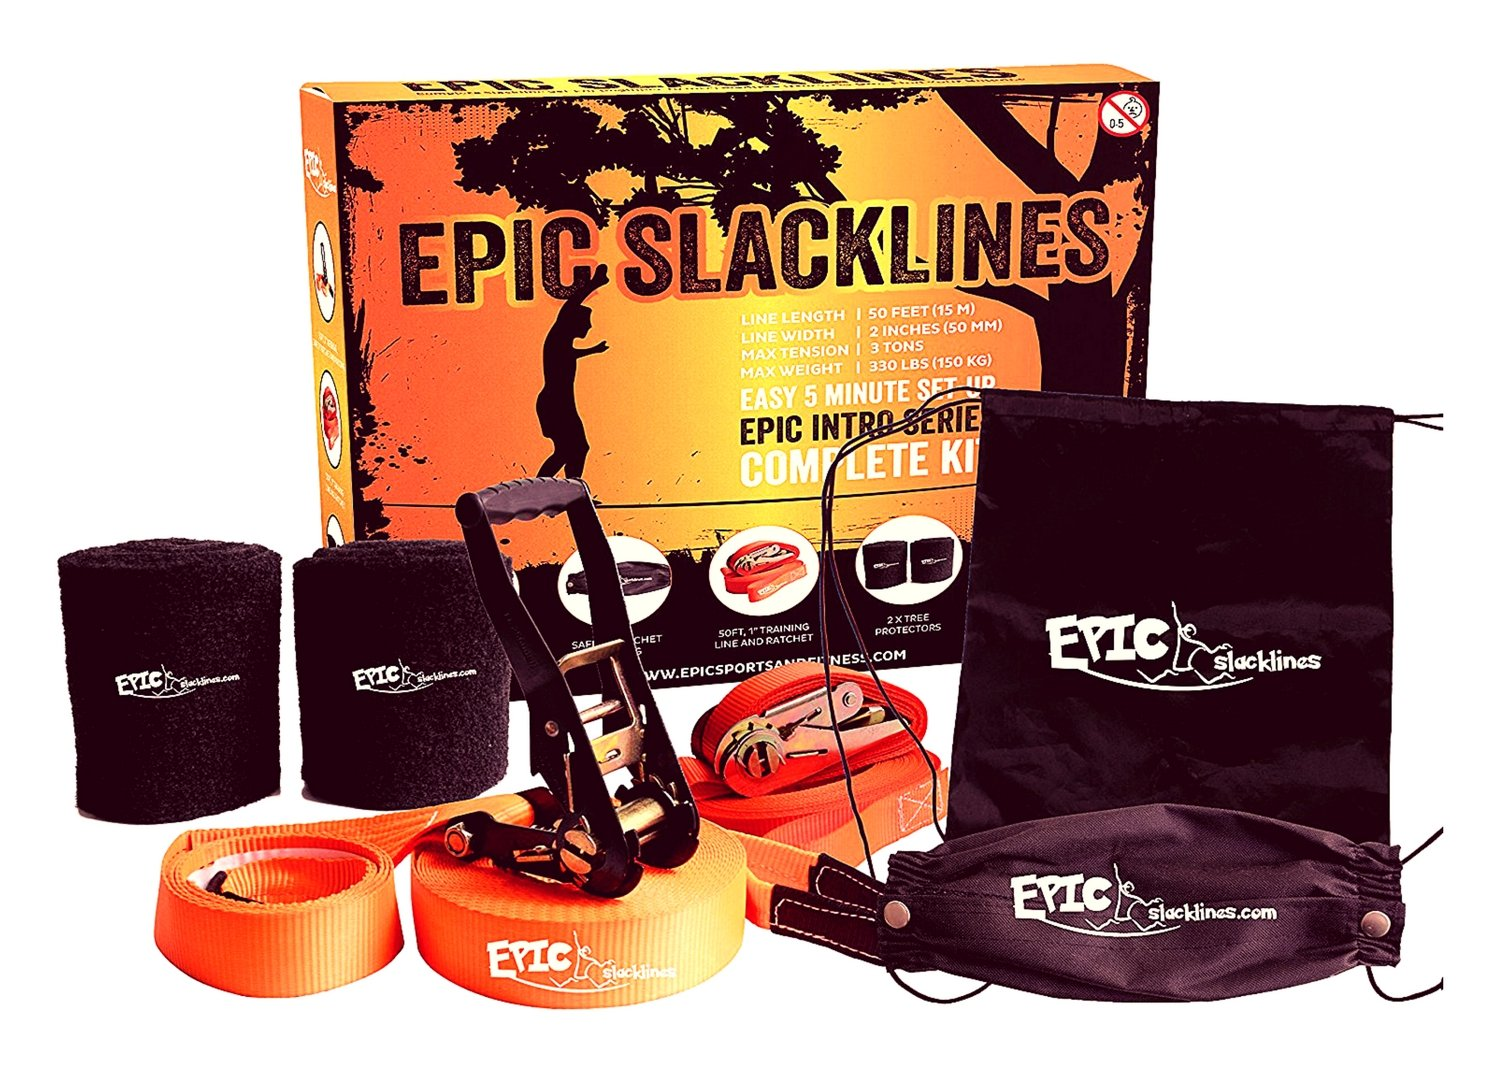 "EPIC SLACKLINE Set | Complete Slackline Kit (Size 50 Ft X 2""): Training Line, Safety Ratchet & Tree Protectors, With Portable Carrying Case 